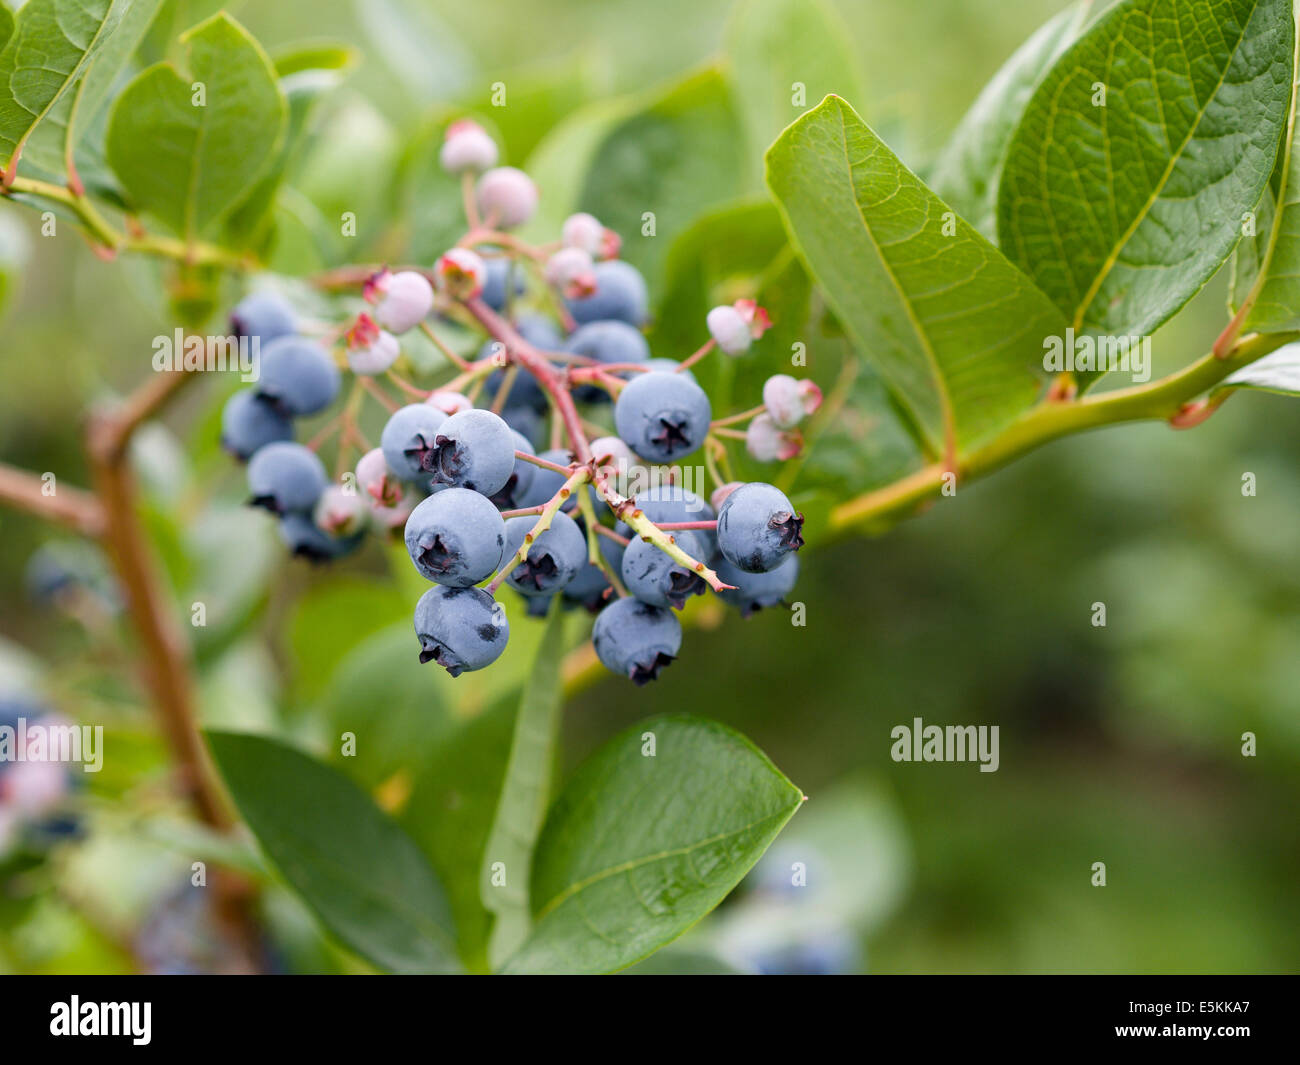 Northern Highbush Blueberries on the Bush. A cluster of fresh ripe and green unripe blueberries hanging on a bush Stock Photo